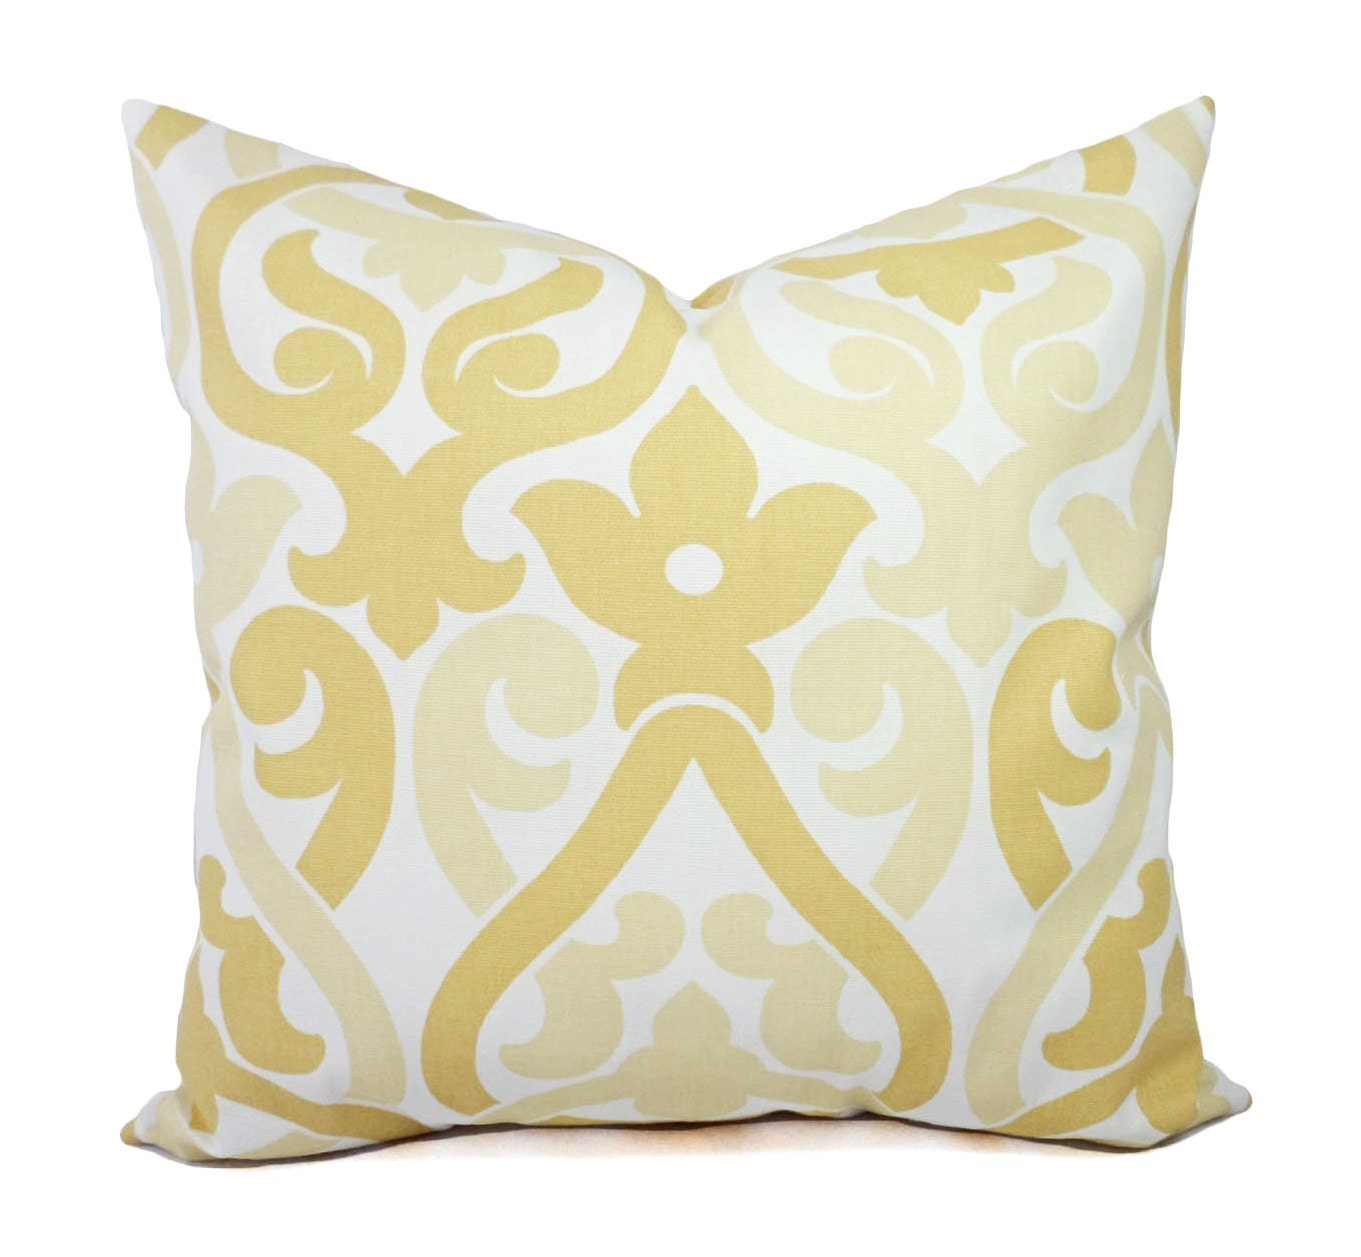 Decorative Pillow Yellow : Two Yellow Trellis Decorative Pillow Covers Saffron Yellow